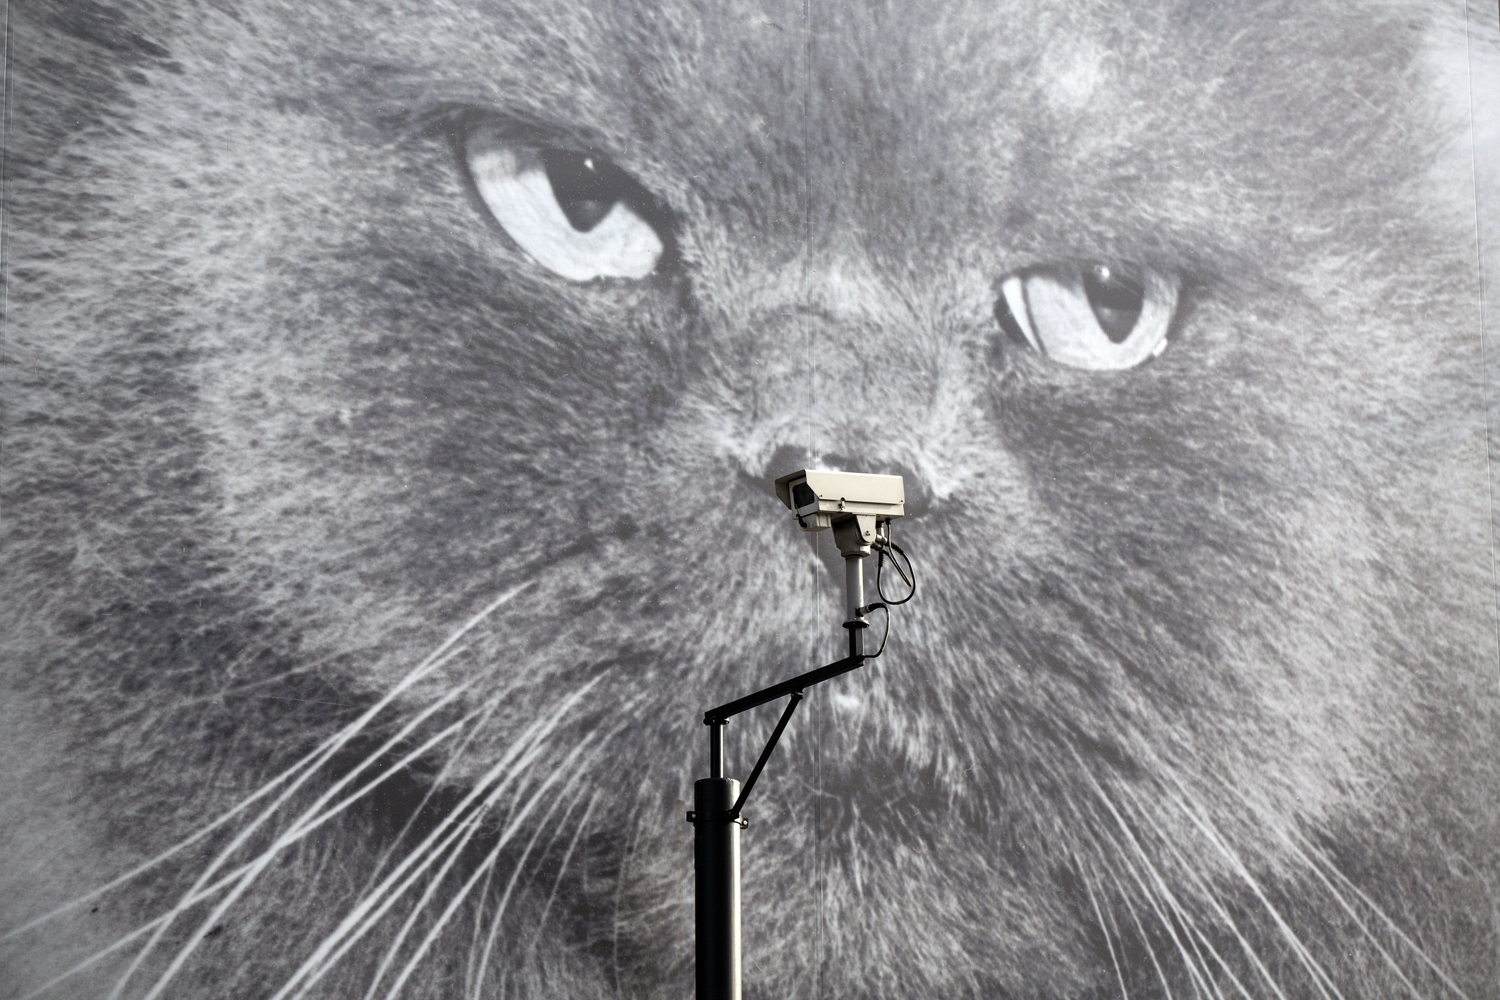 Apr. 30, 2014.  A CCTV camera is positioned in front of a giant poster of a cat  in London, England.